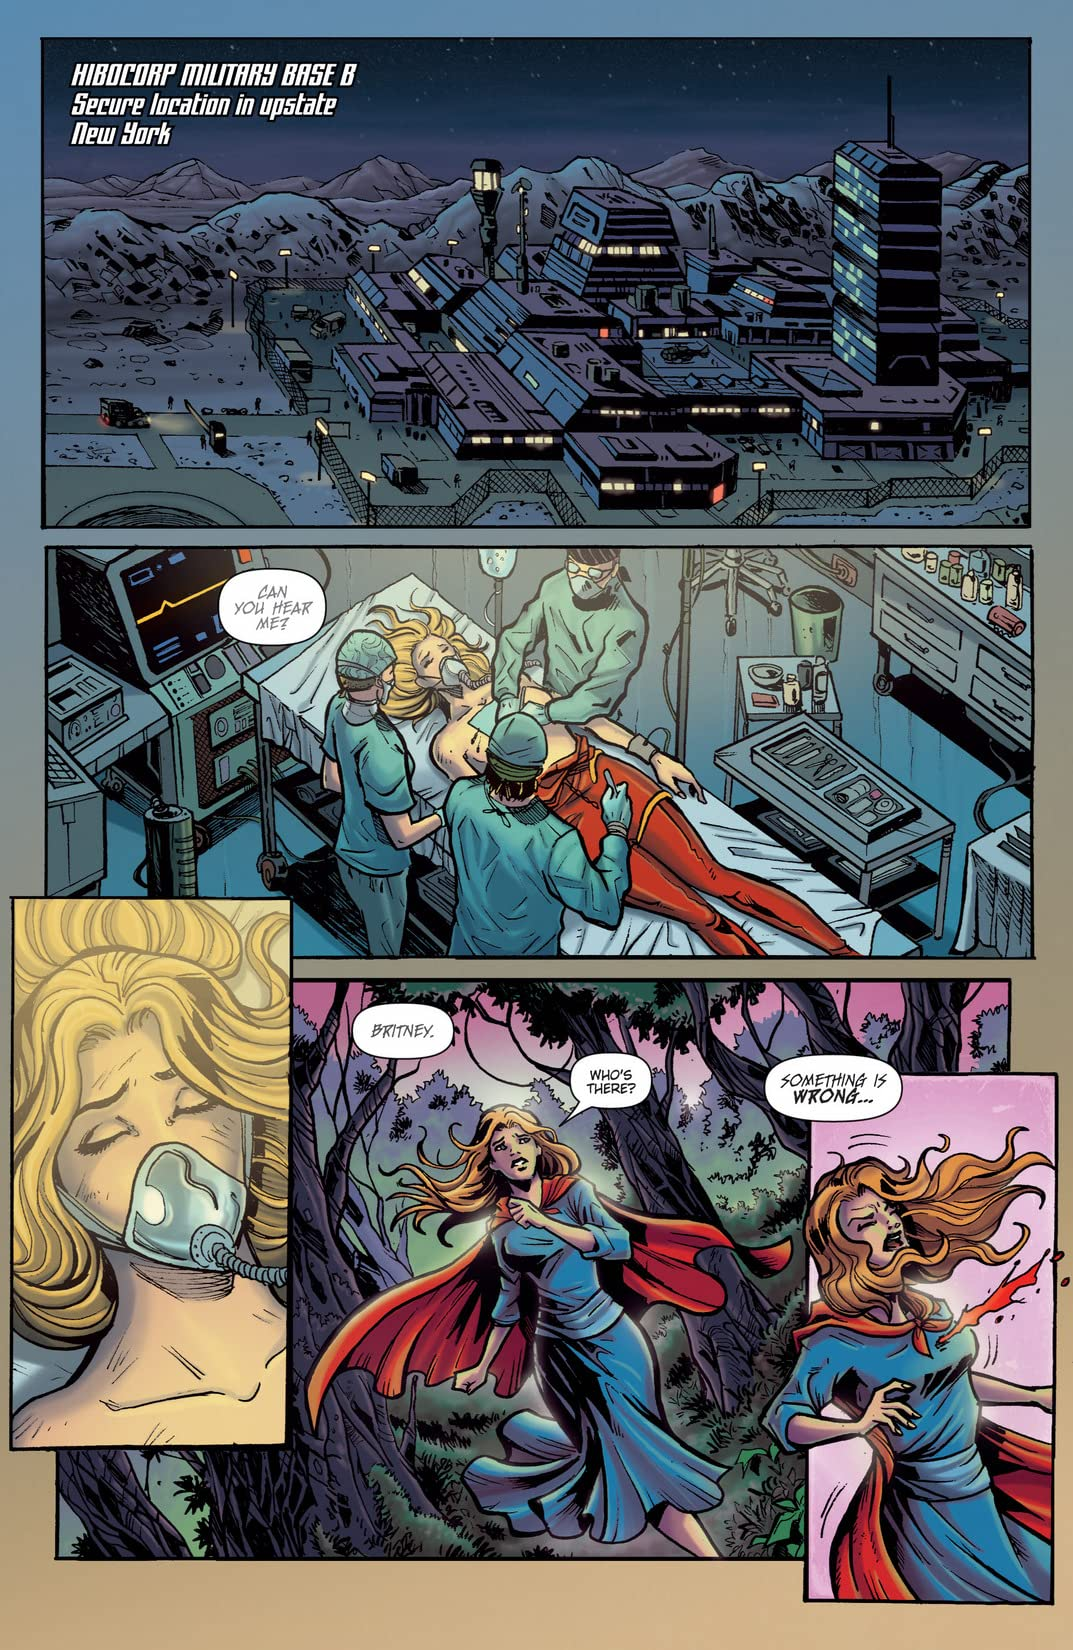 Code Red #4 (of 5)